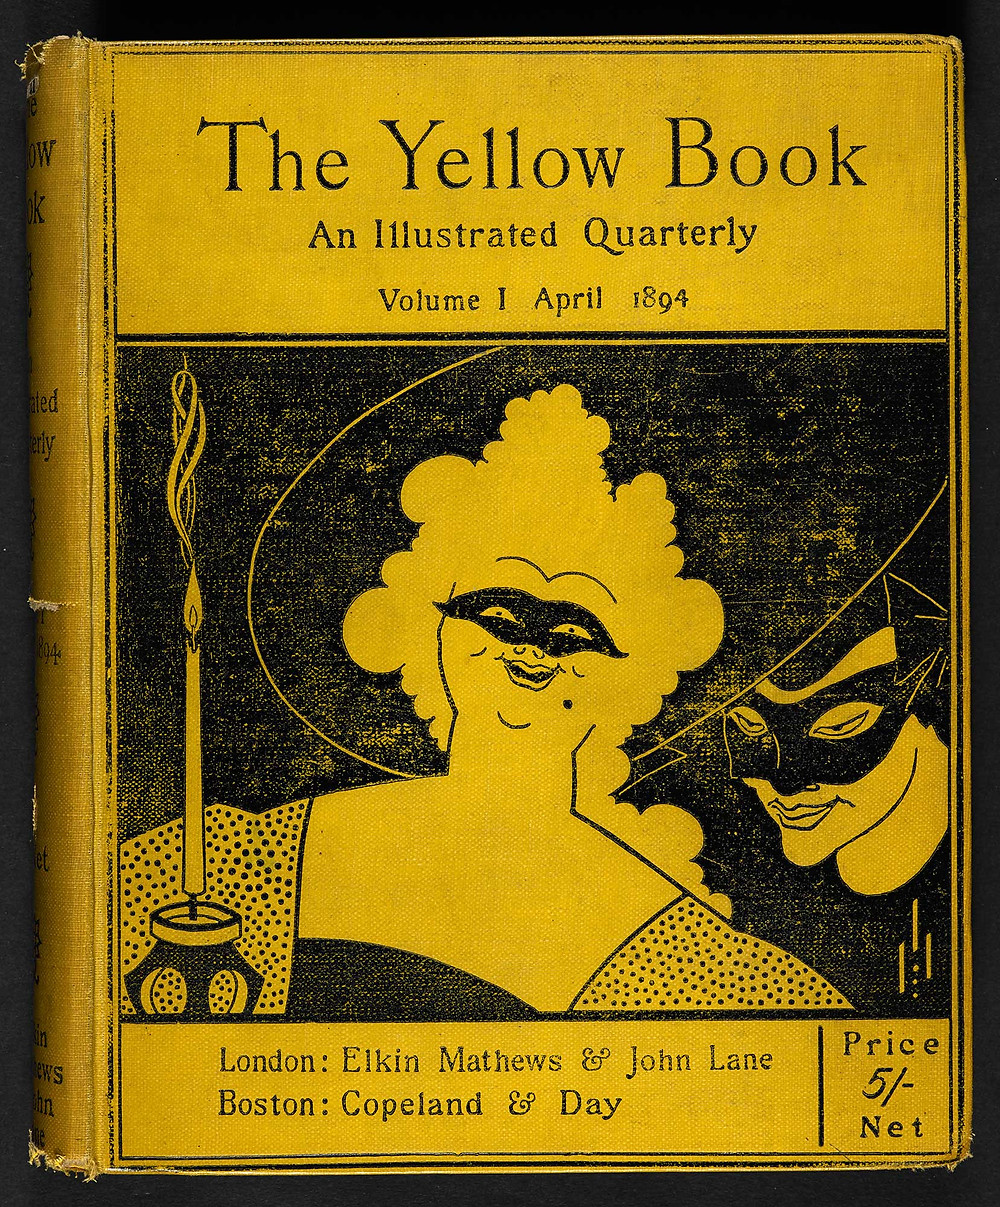 Masquerade, The Yellow Book Debut Cover | The Aestheticization of Deviance